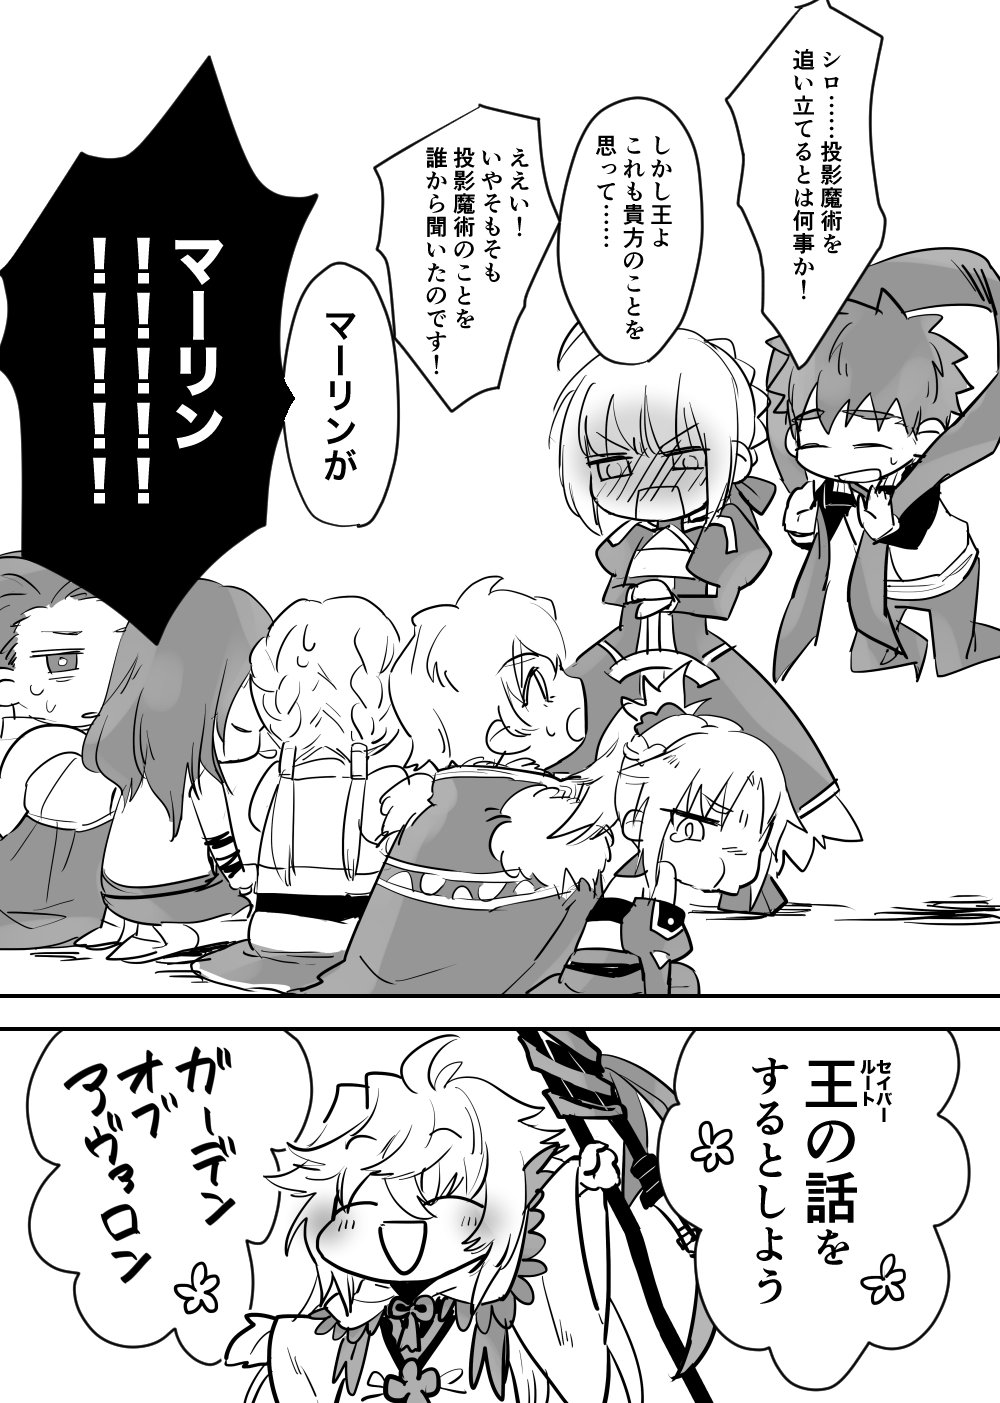 armor artoria_pendragon_(all) bedivere blush braid cape closed_eyes comic emiya_shirou fate/grand_order fate/stay_night fate_(series) gawain_(fate/extra) gohan_kimi highres knights_of_the_round_table_(fate) lancelot_(fate/grand_order) long_hair merlin_(fate/stay_night) monochrome multiple_boys nose_bubble open_mouth ponytail saber saber_of_red short_hair sleeping sweatdrop teardrop tristan_(fate/grand_order)